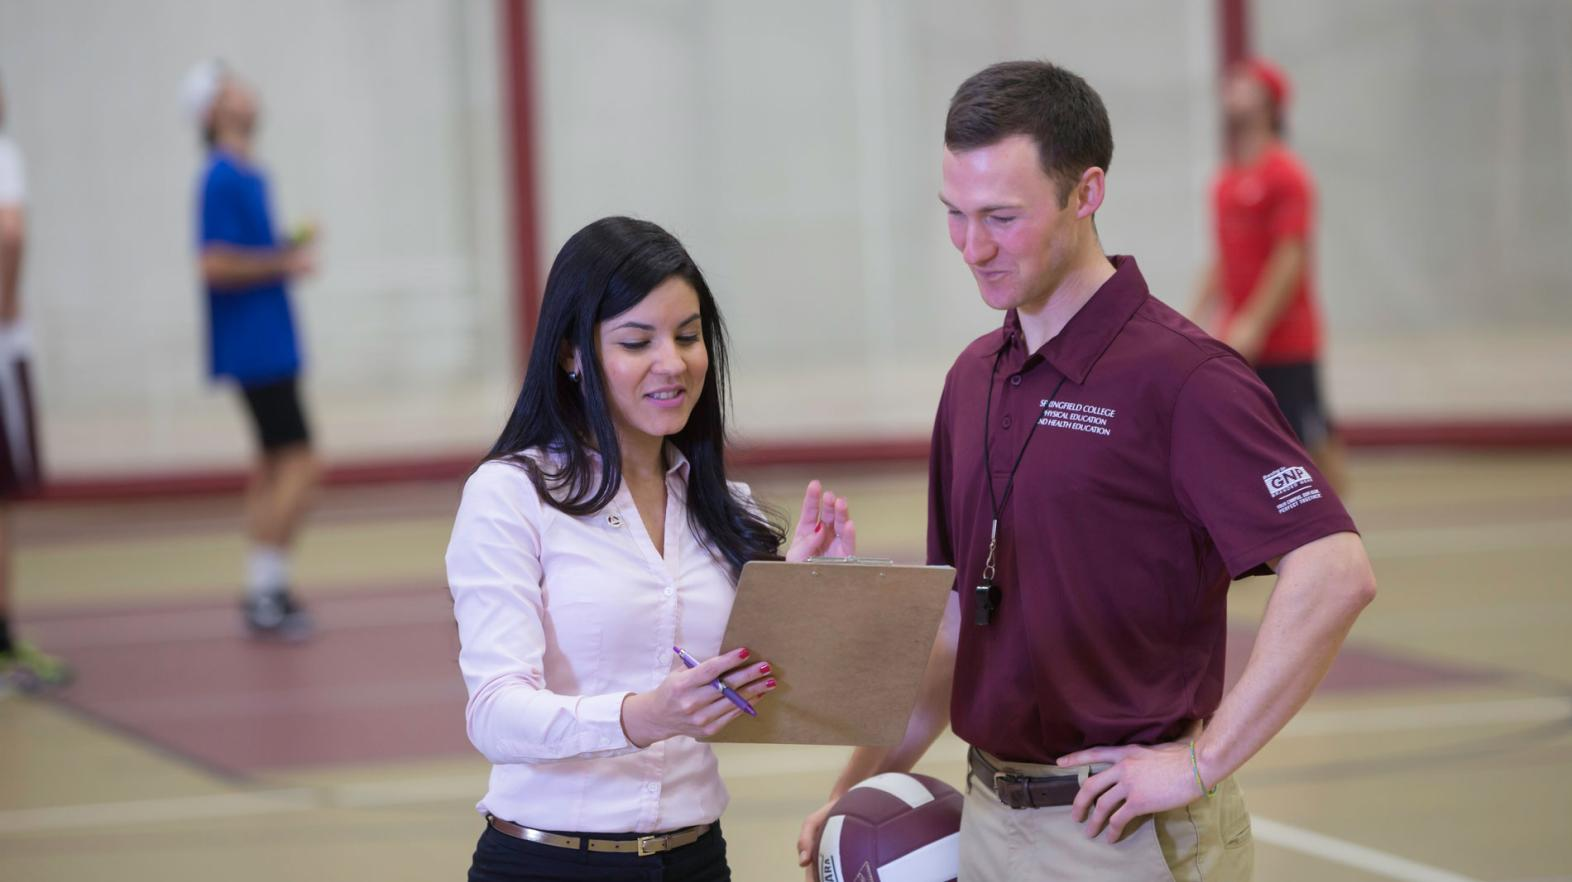 A physical education student works with a client at Springfield College